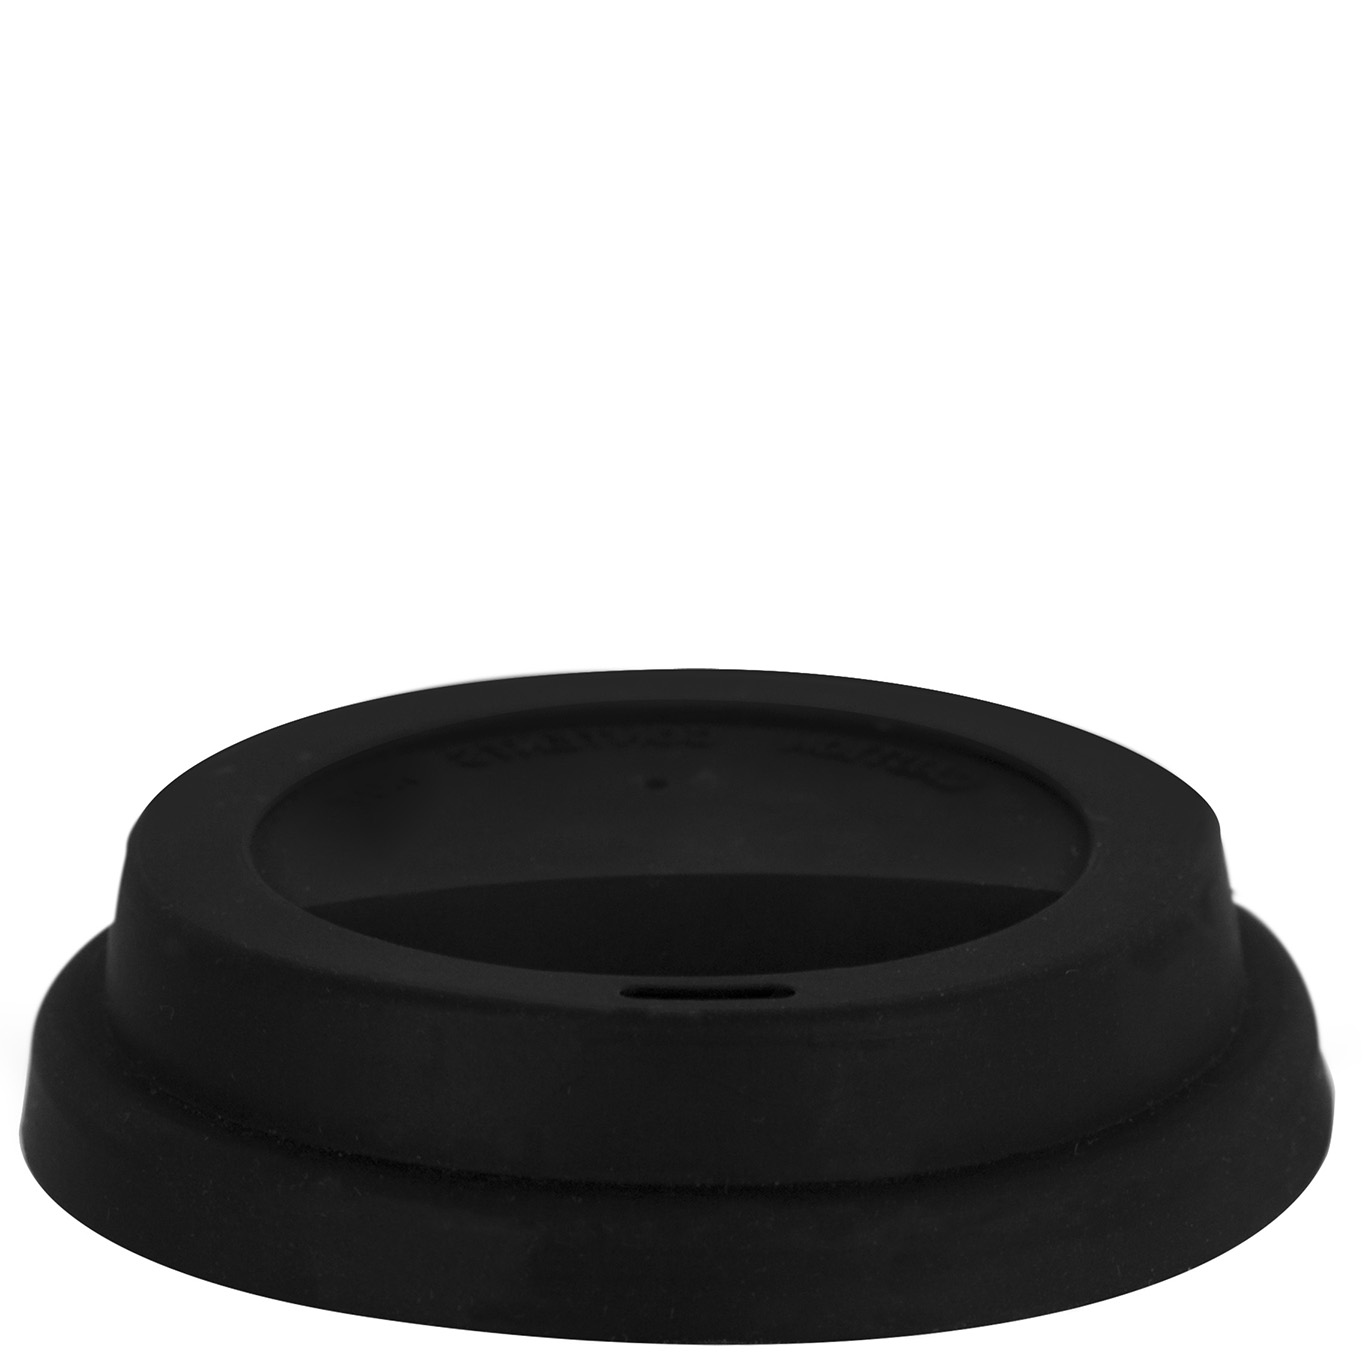 Lid-Silicone-Ceramic-Black Latte2-OnLine-Set6